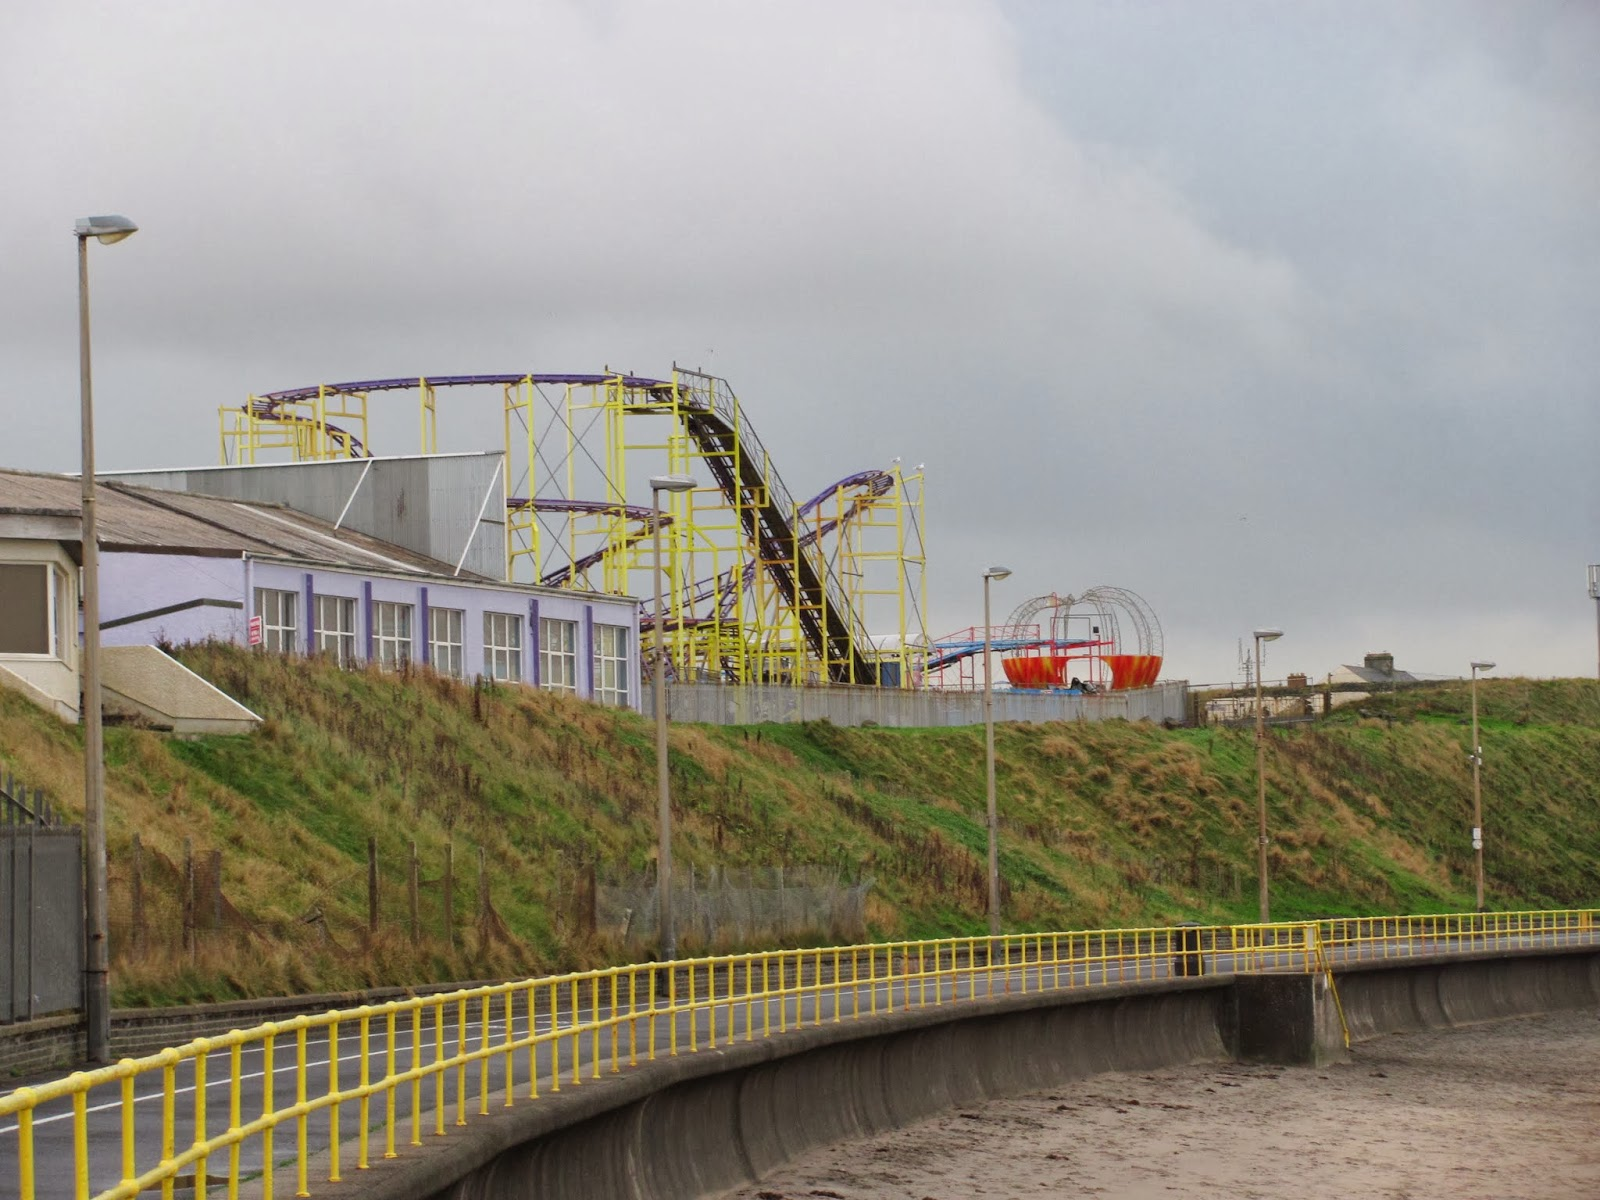 Thrill rides are closed for the season in Portrush, Northern Ireland